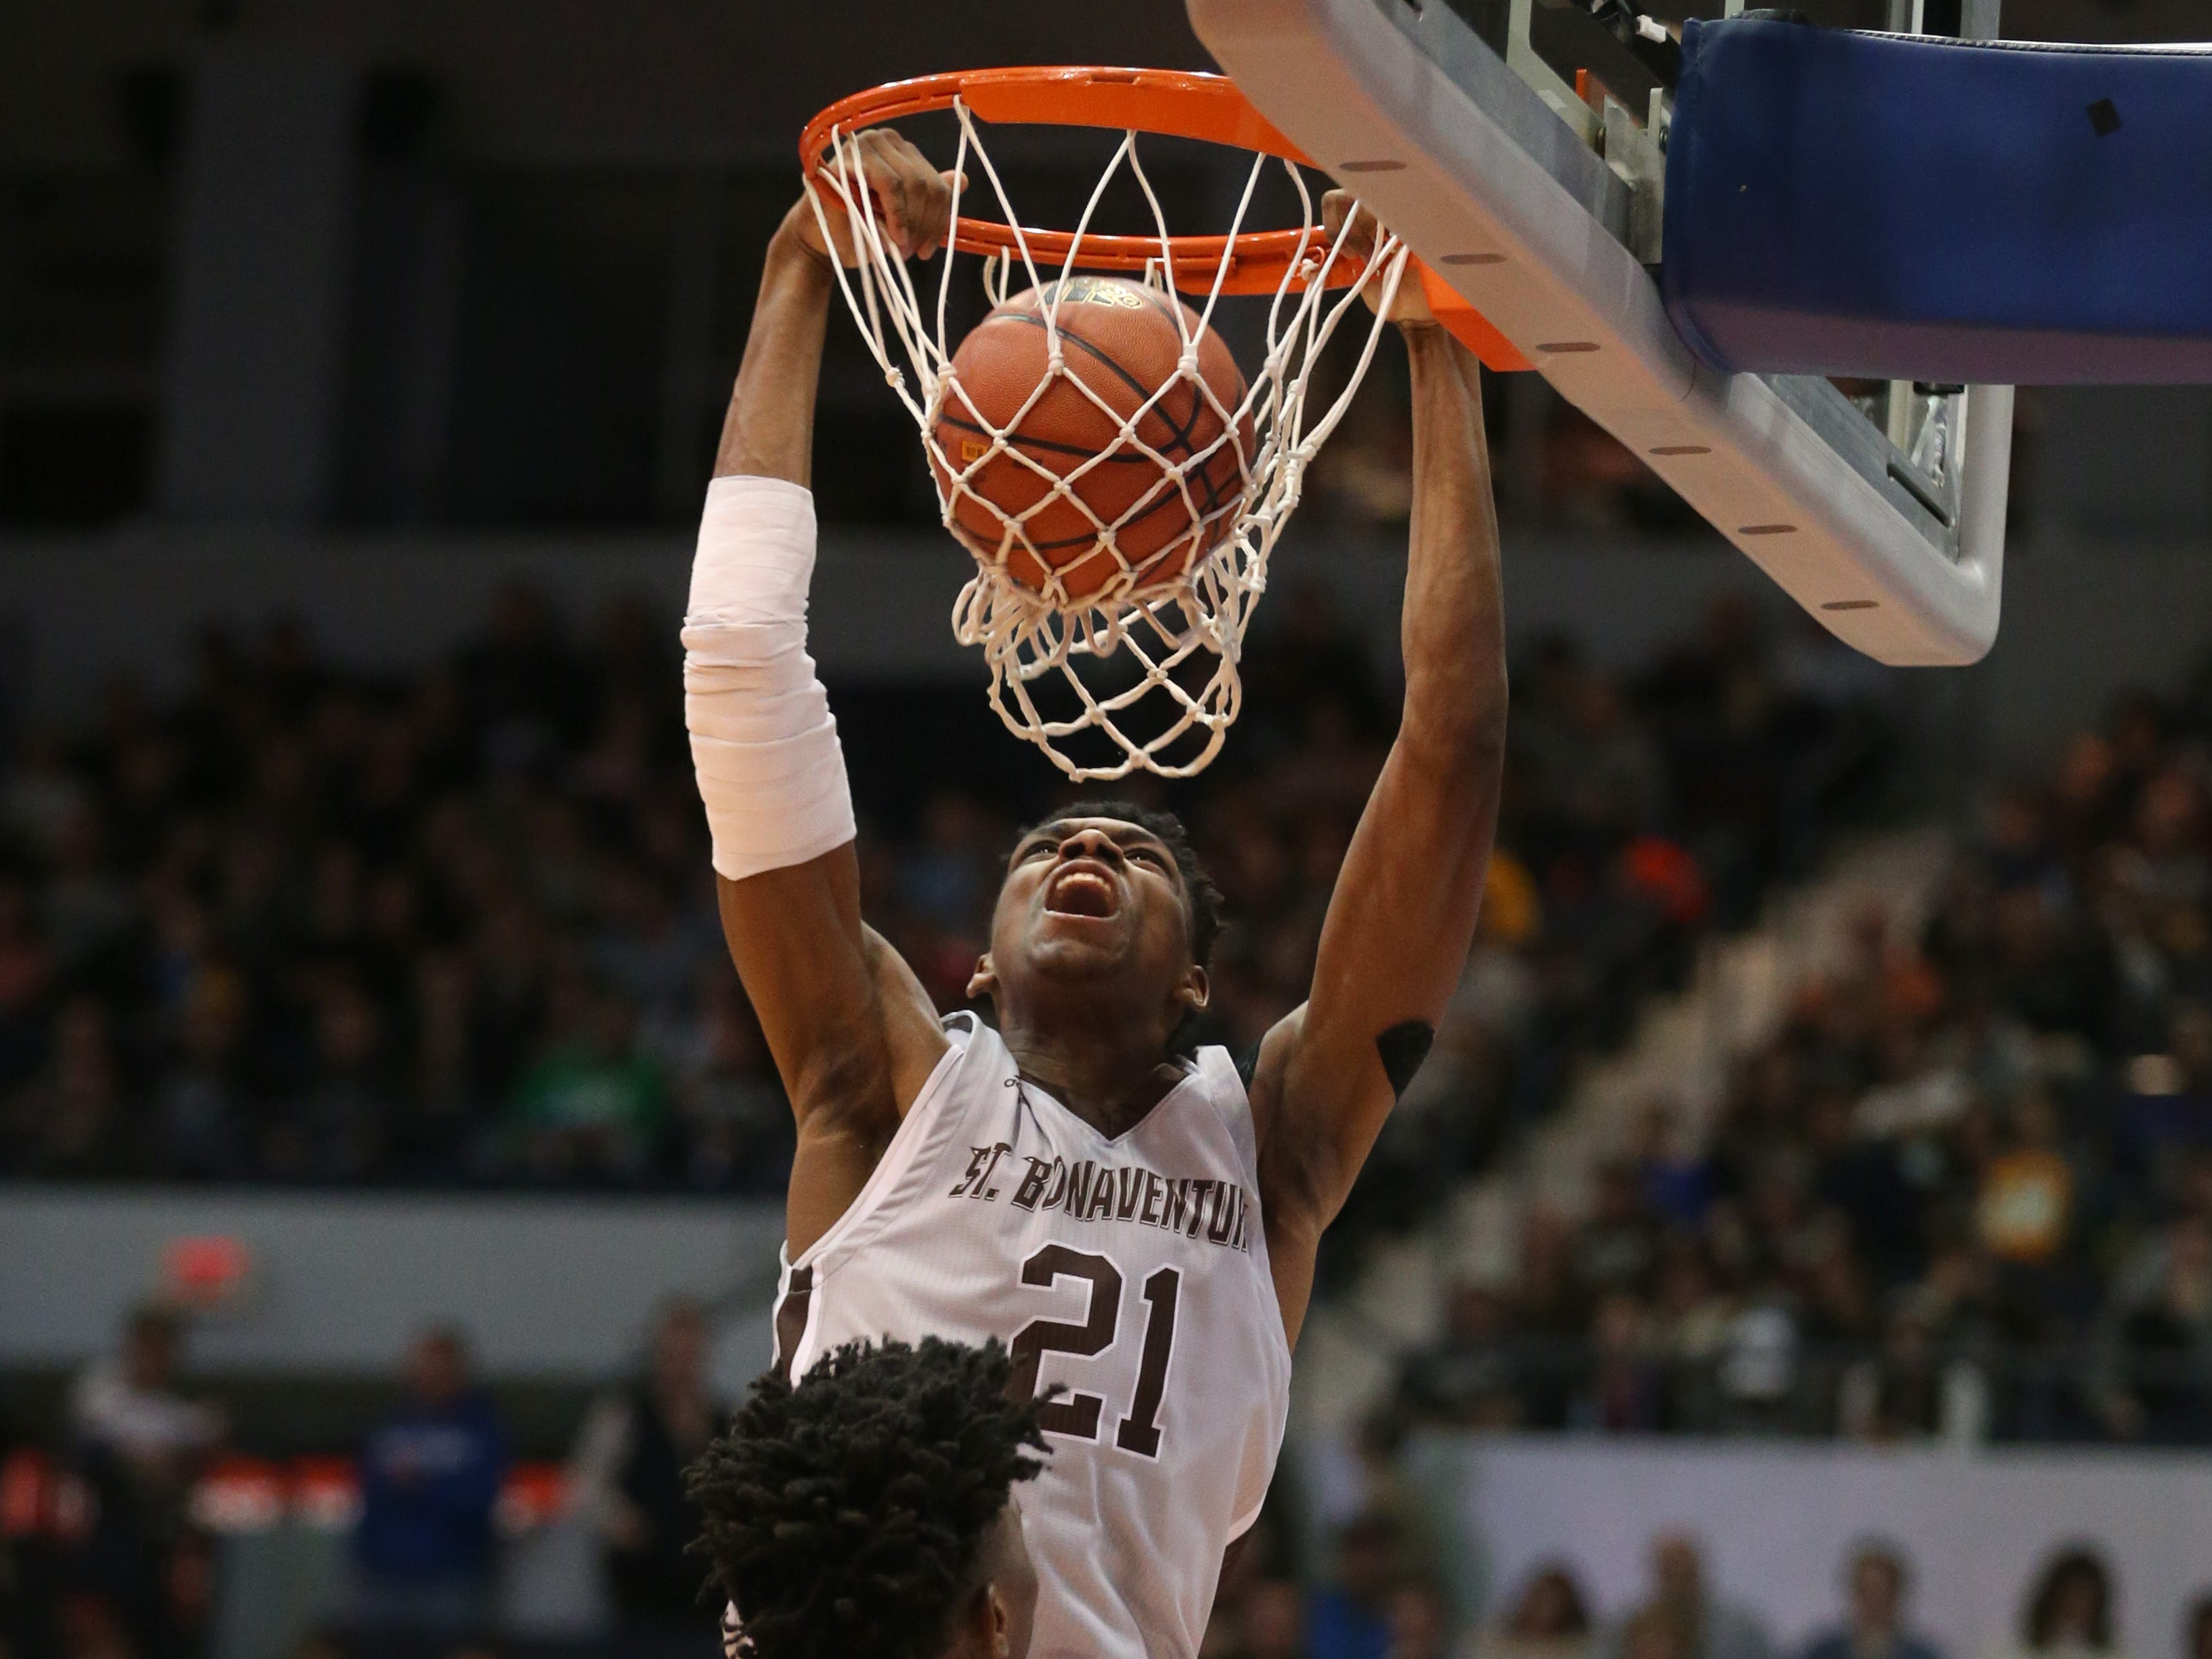 St. Bonaventure's Osun Osunniyi slams home two points late in the game against Fordham.